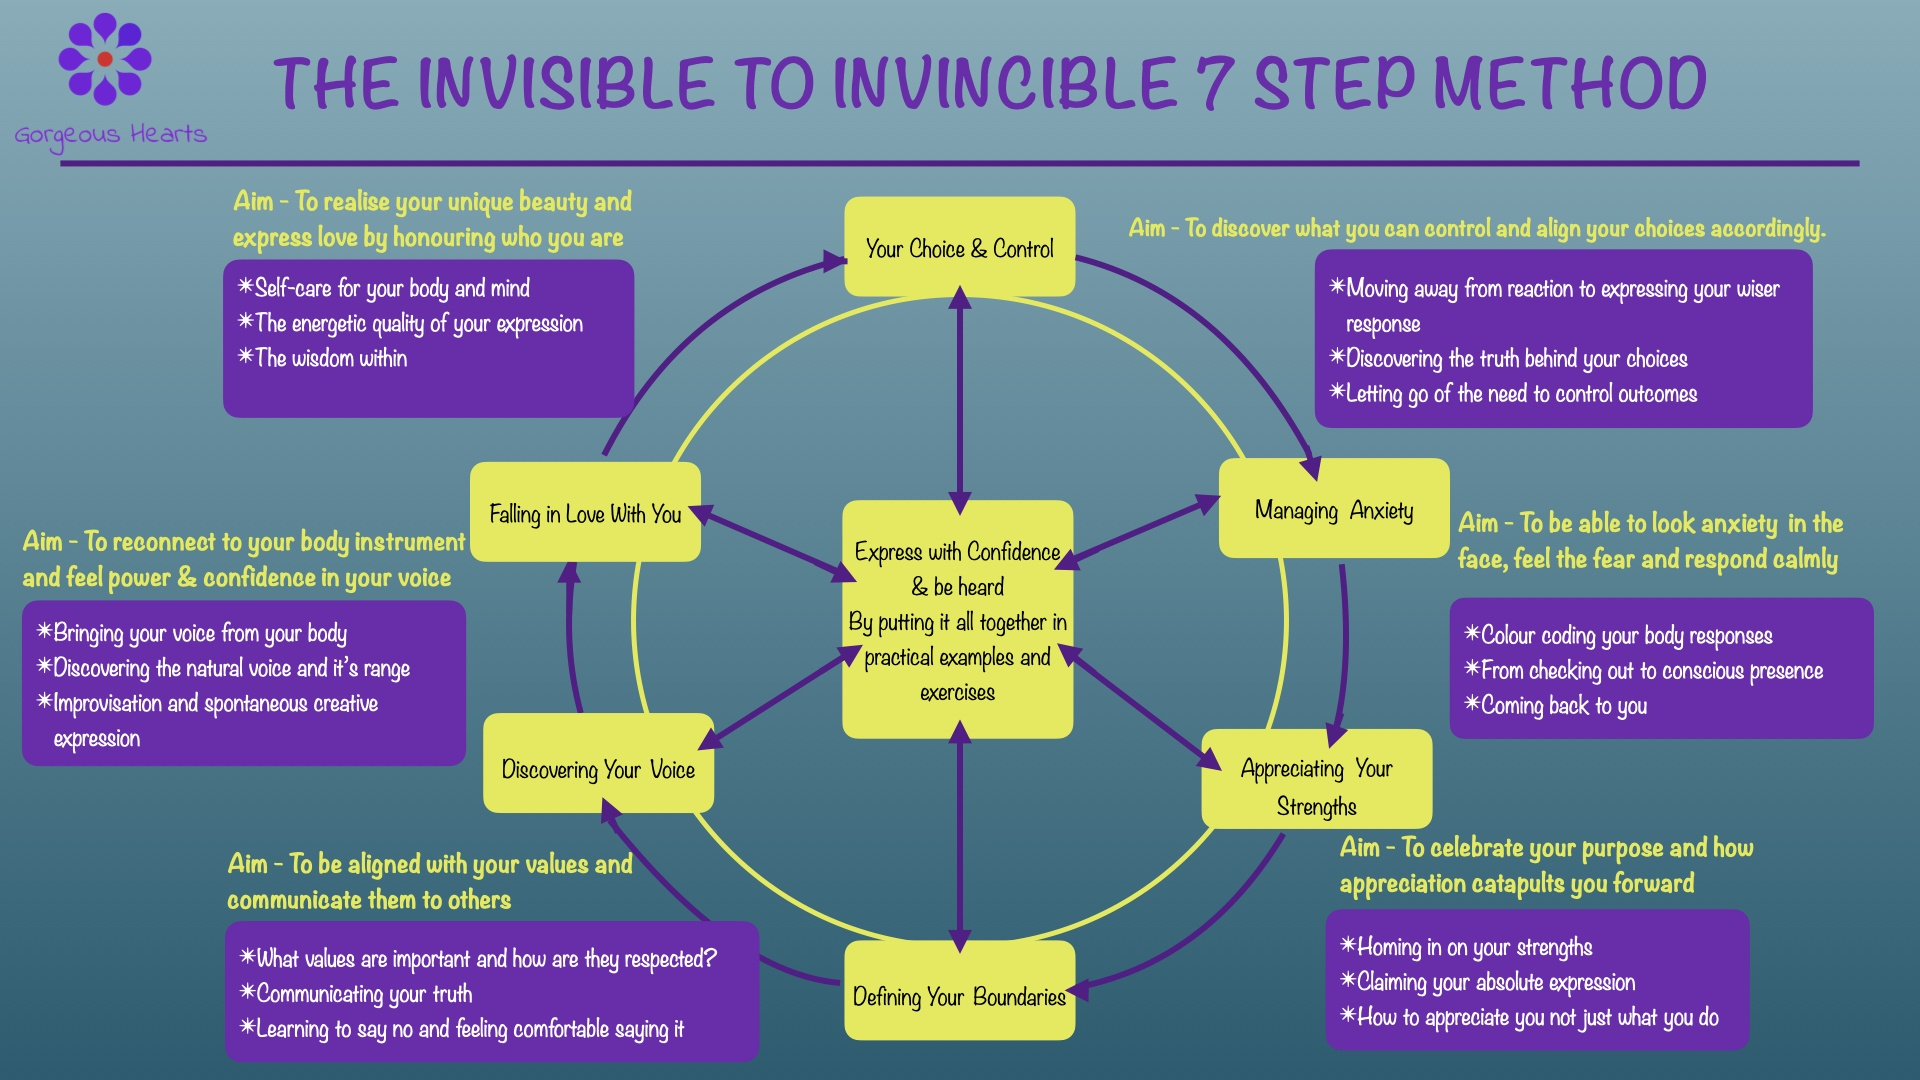 The invisible to Invincible 7 step method to confident expression